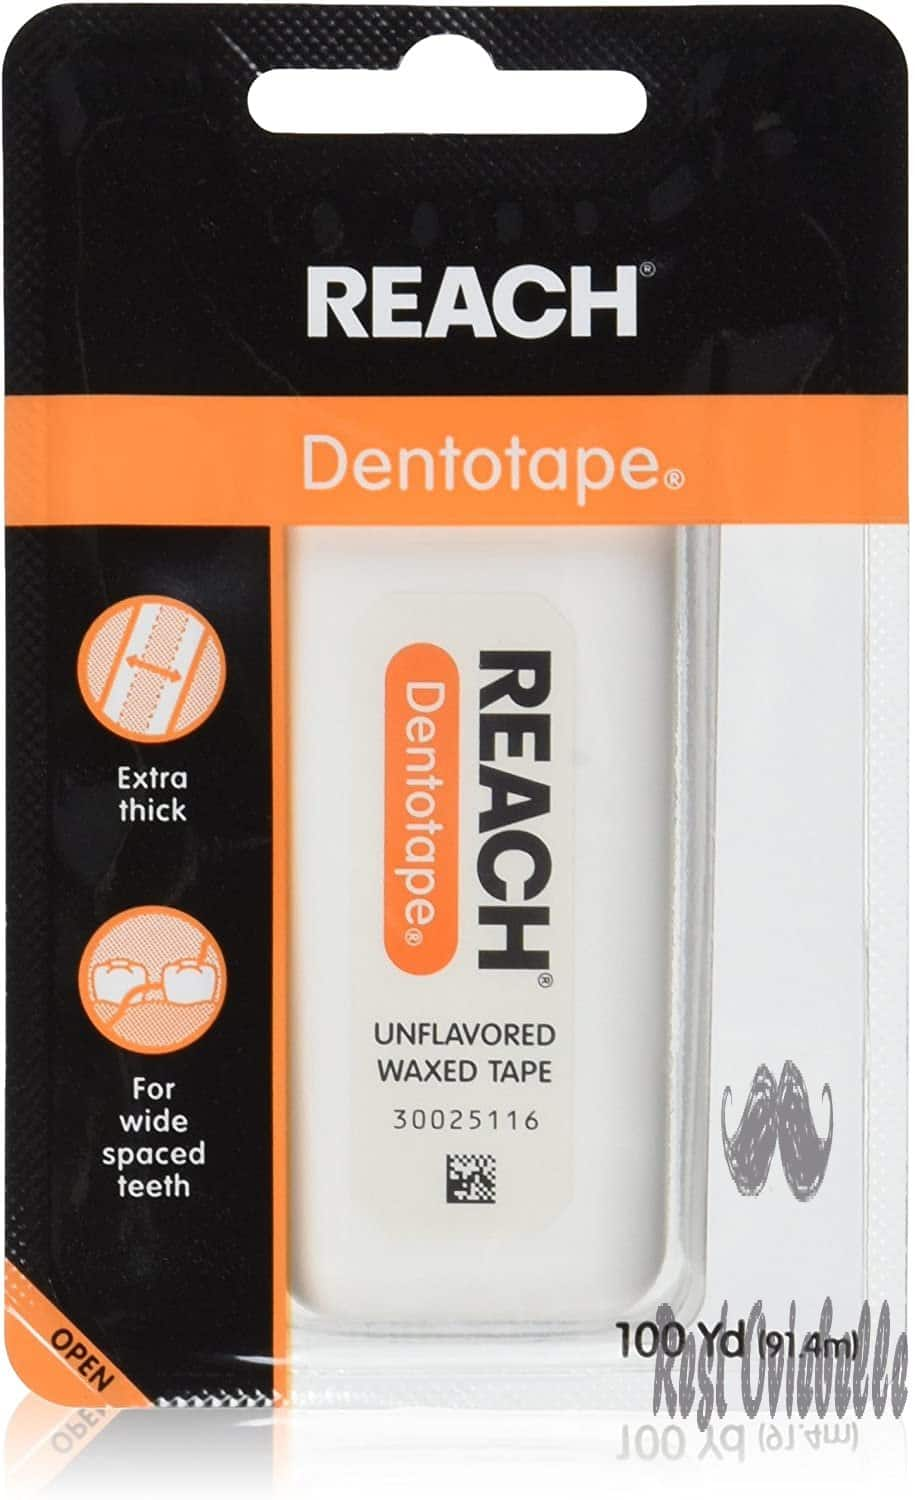 Reach Dentotape Waxed Dental Floss